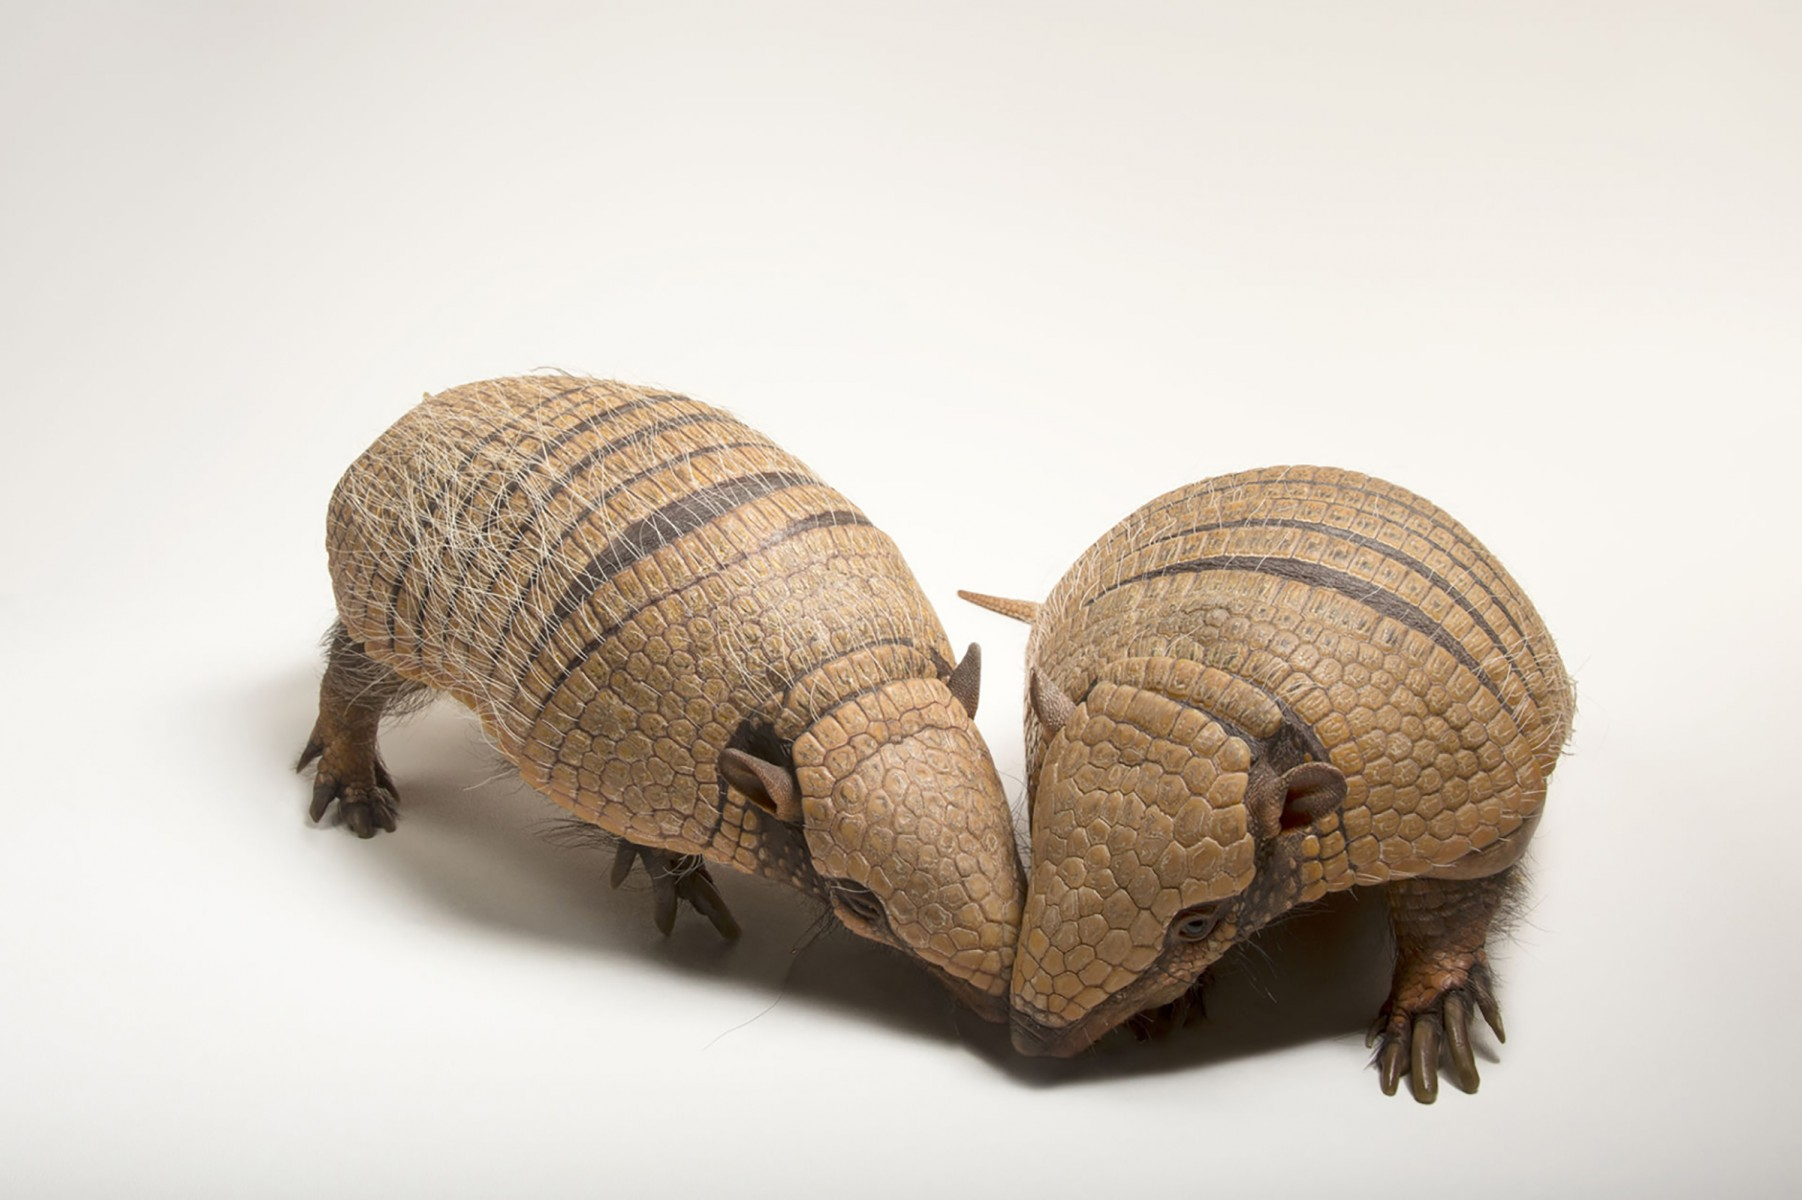 A mated pair of six-banded armadillos (Euphractus sexcinctus) named Dilla (bigger) and Marty at the National Mississippi River Museum and Aquarium in Dubuque, Iowa.